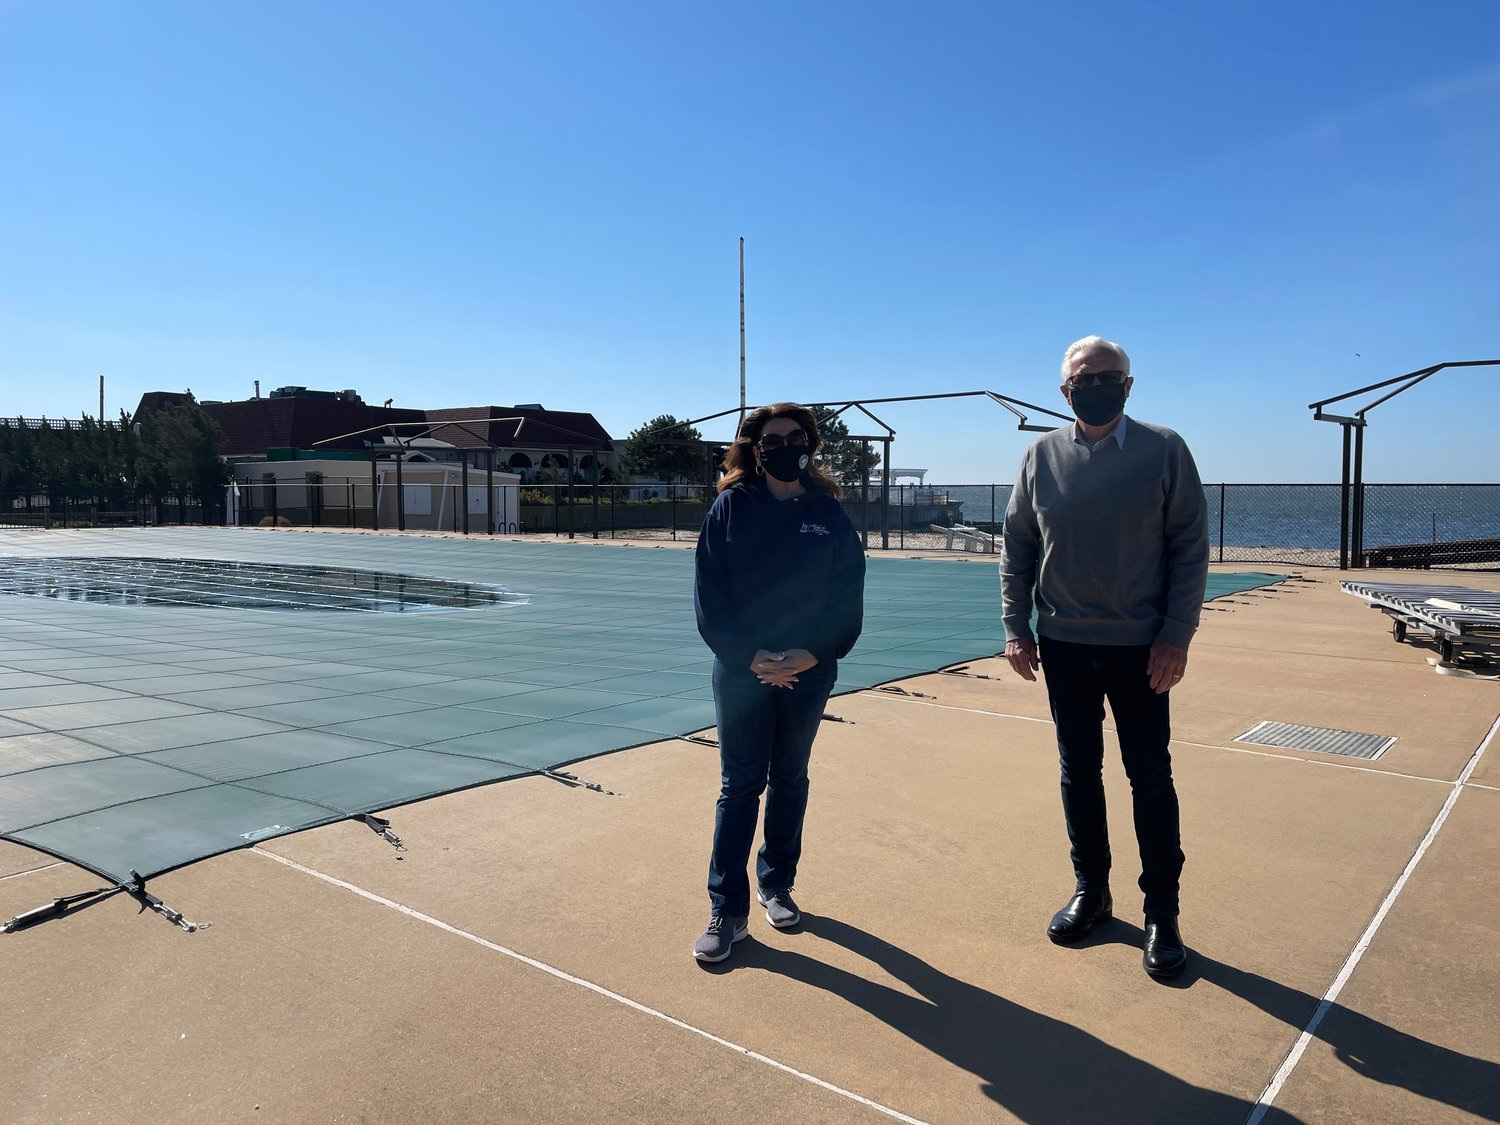 Parks director Maria Giustizia and trustee Joseph Keyes pose at the pool in anticipation of its reopening this summer.